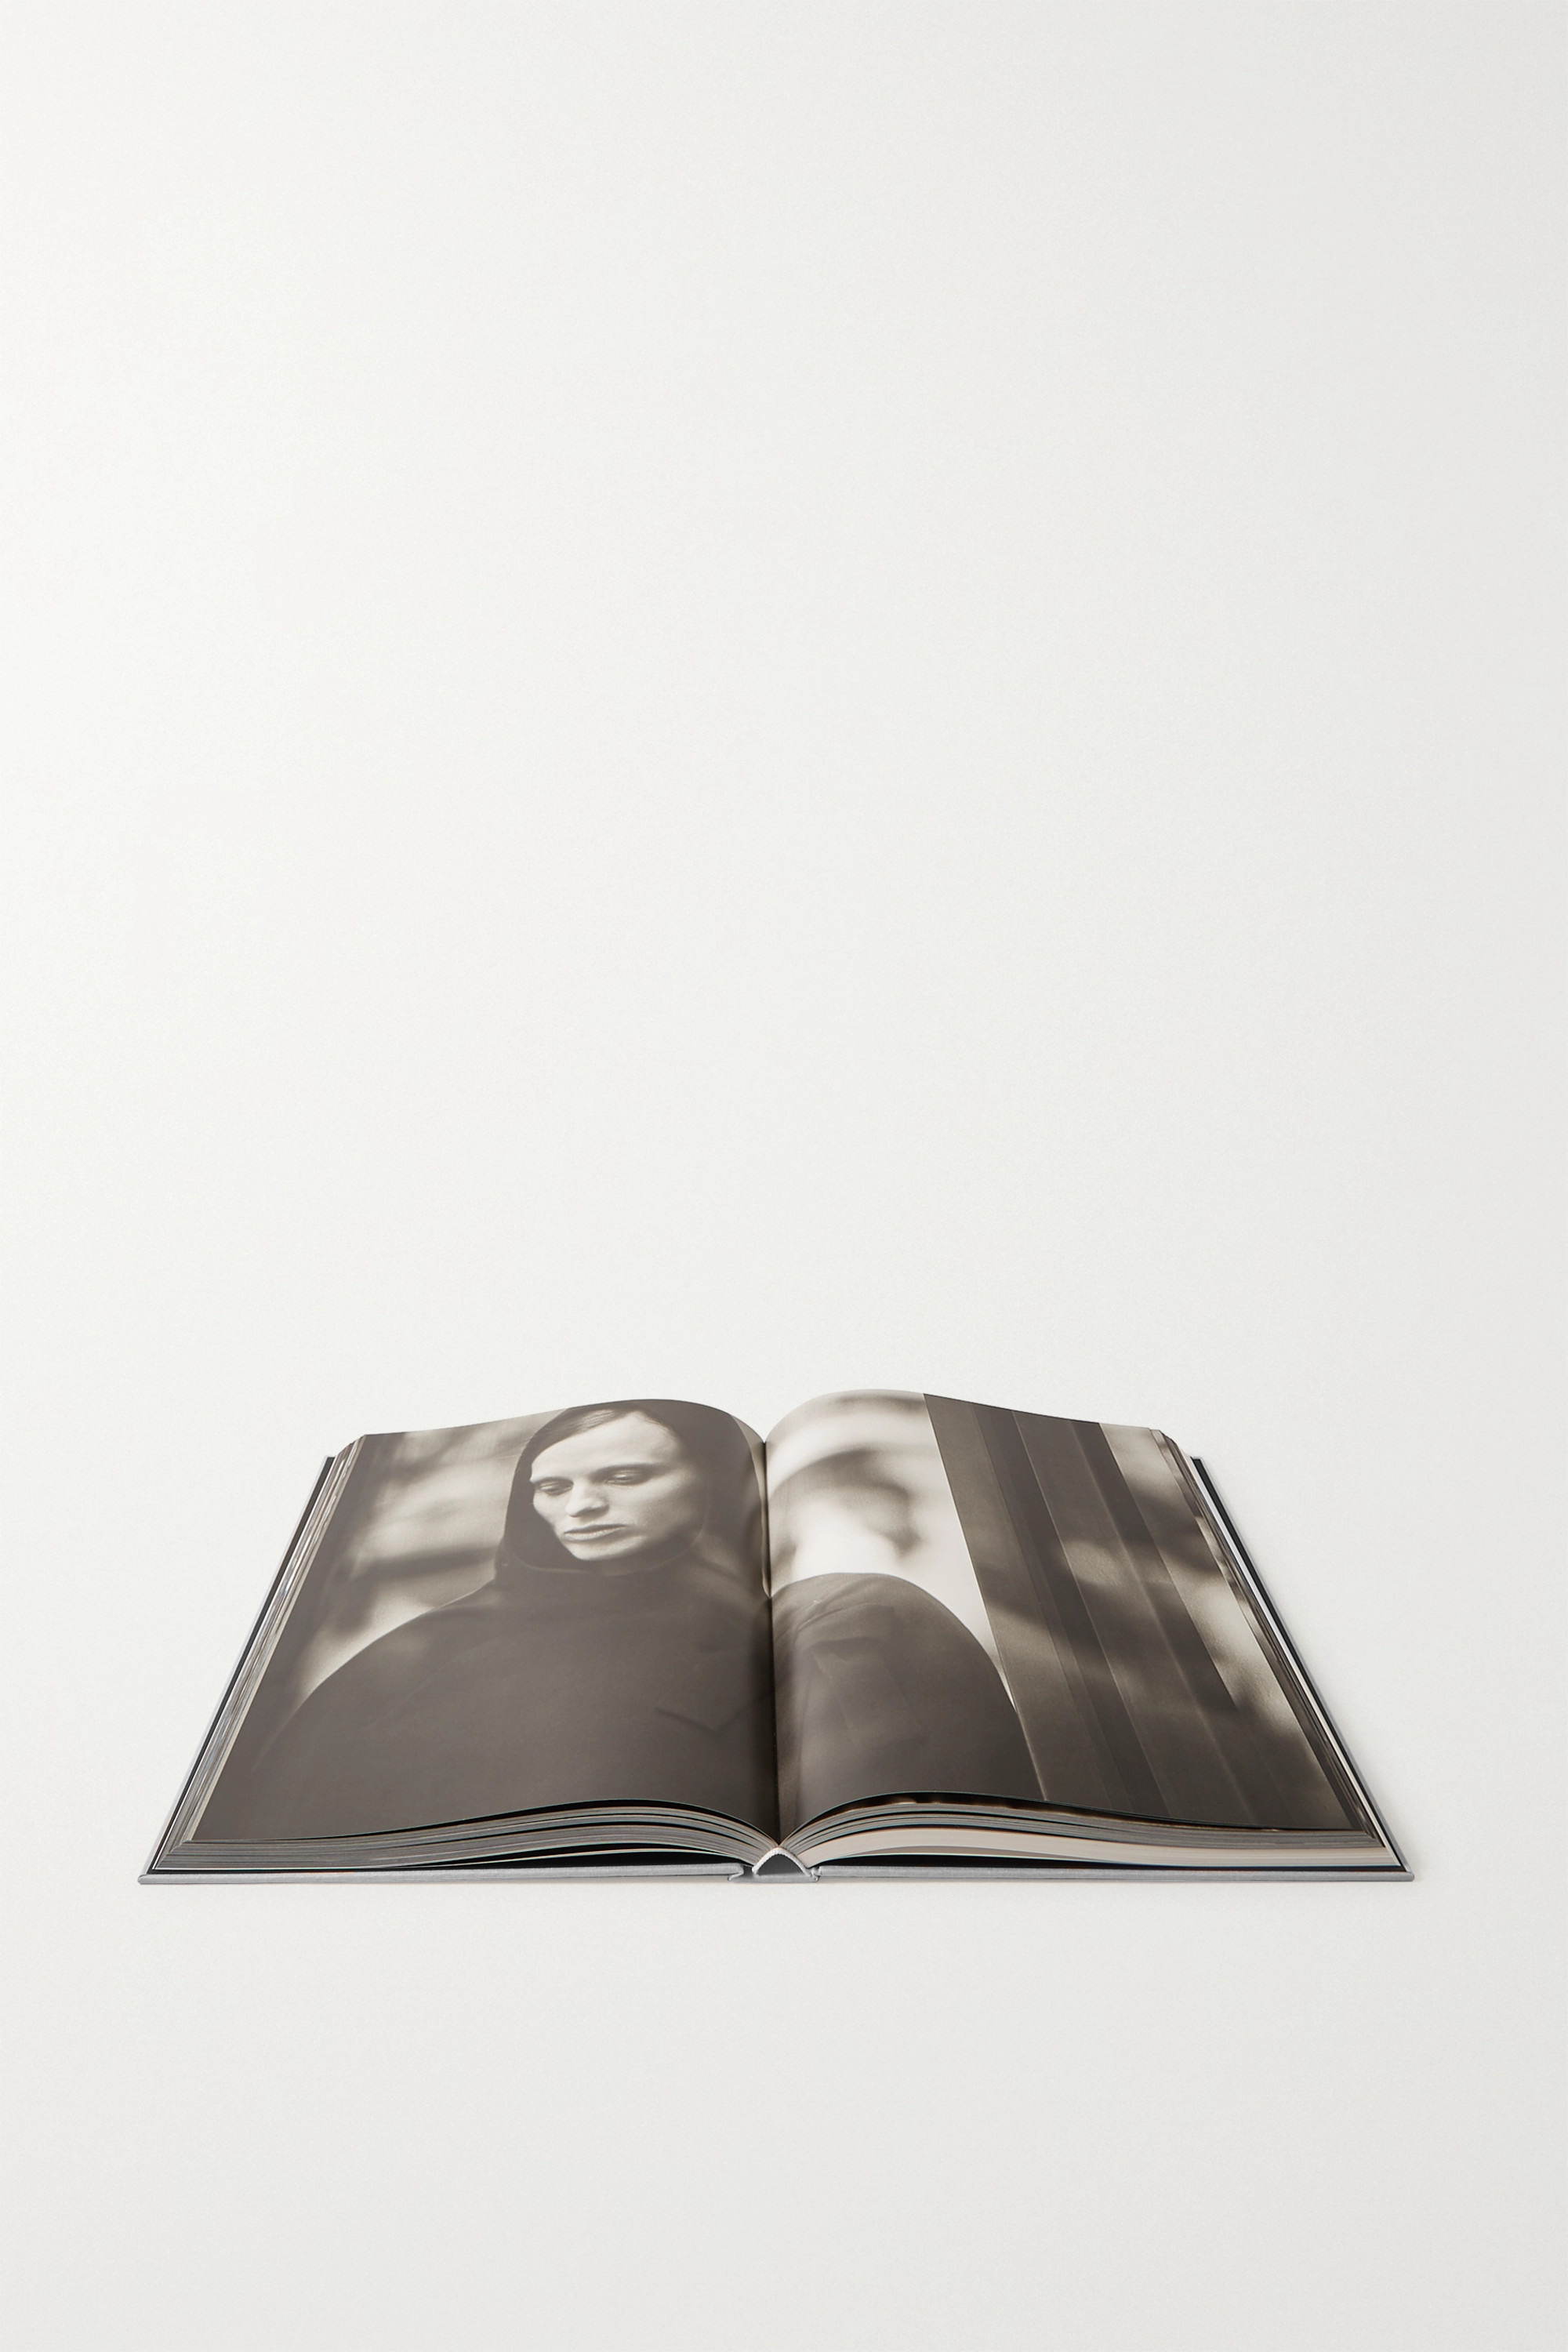 Taschen Set of two hardcover books: Dior by Peter Lindbergh